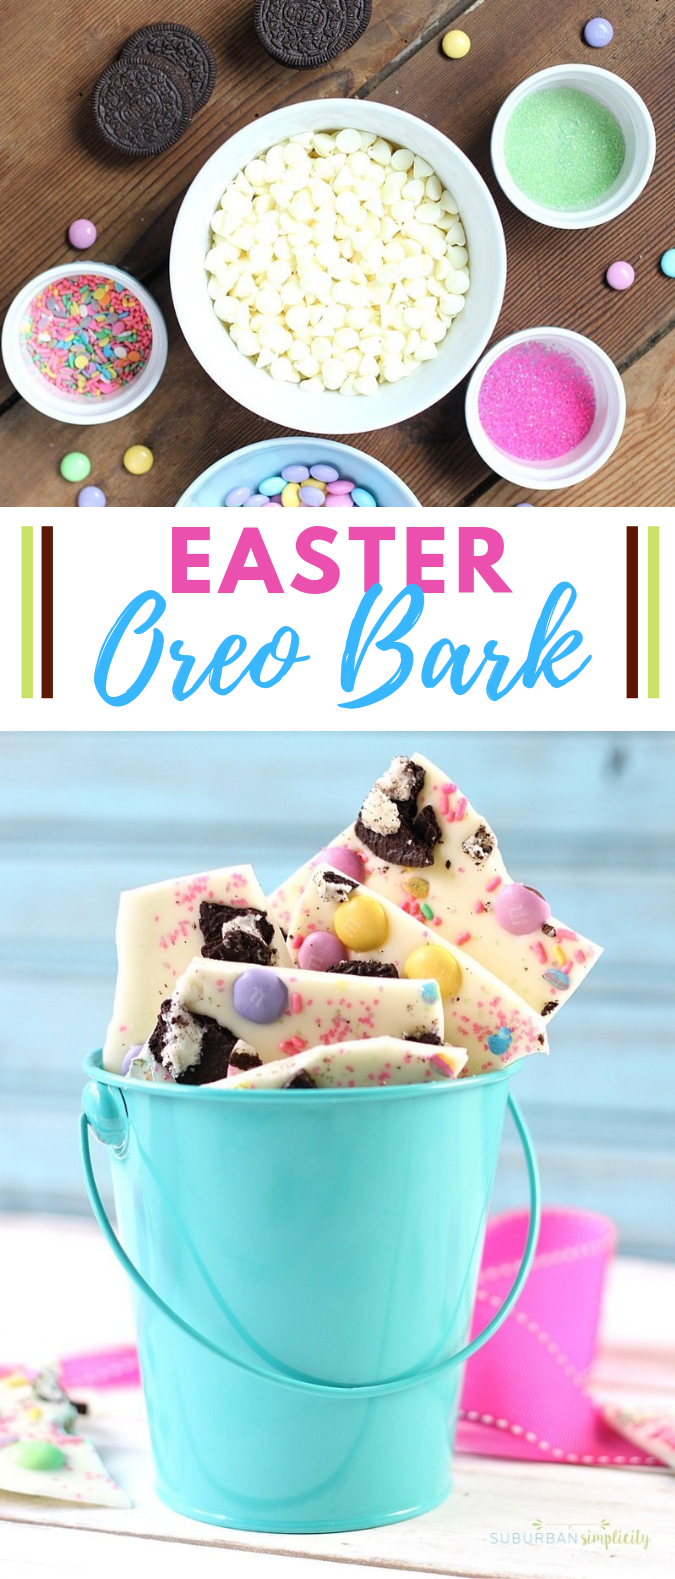 EASTER OREO BARK THAT'S SUPER EASY! #dessert #cake